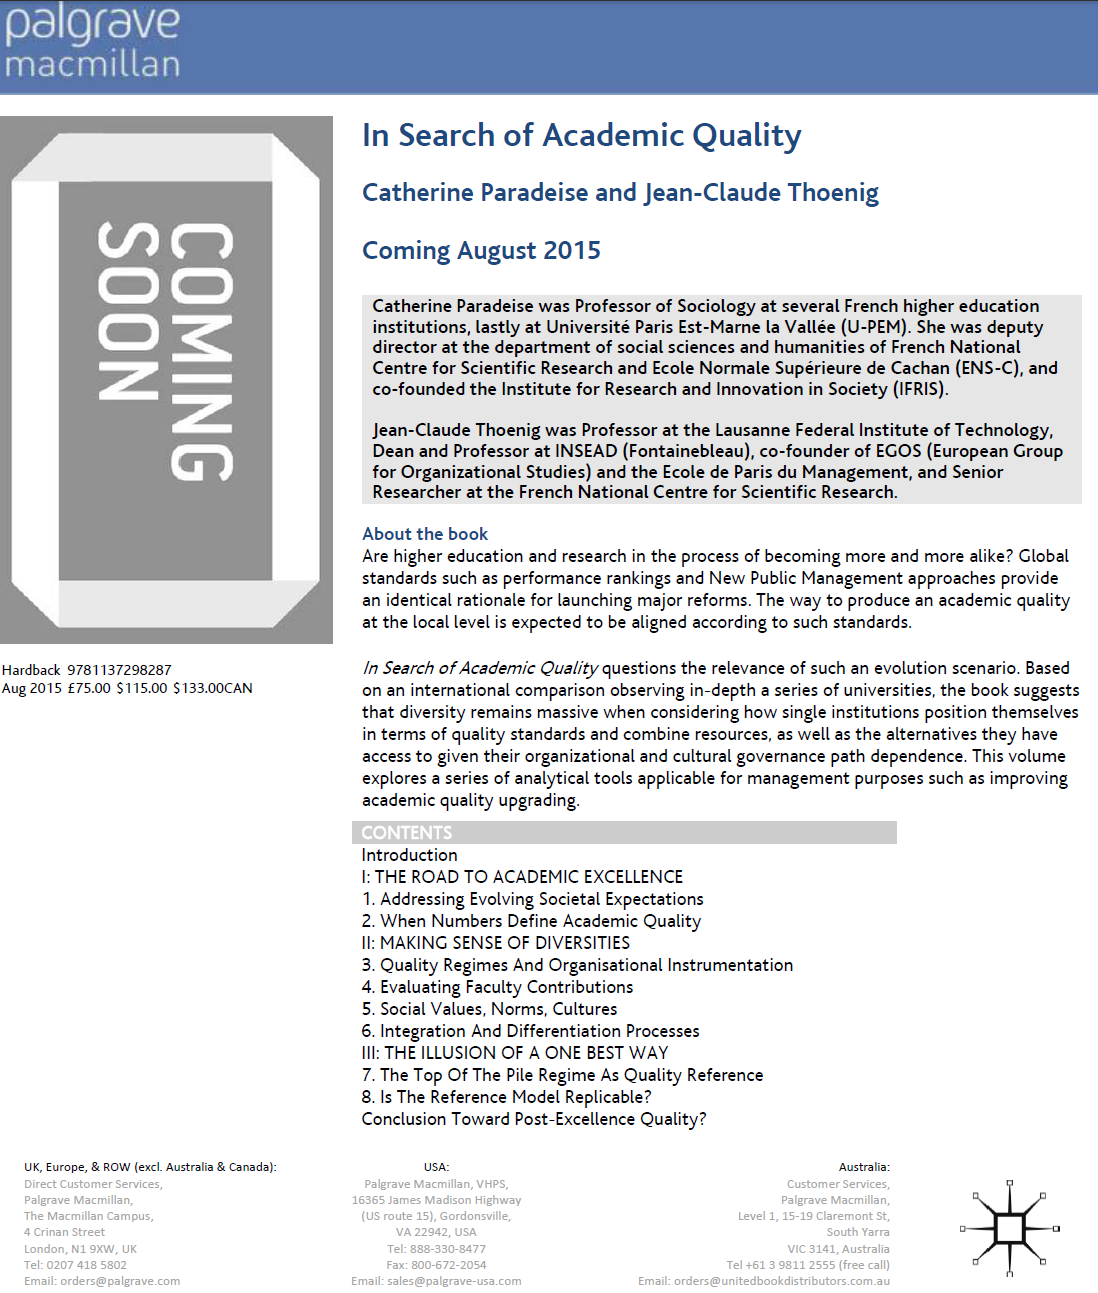 In Search of Academic Quality, Catherine Paradeise and Jean